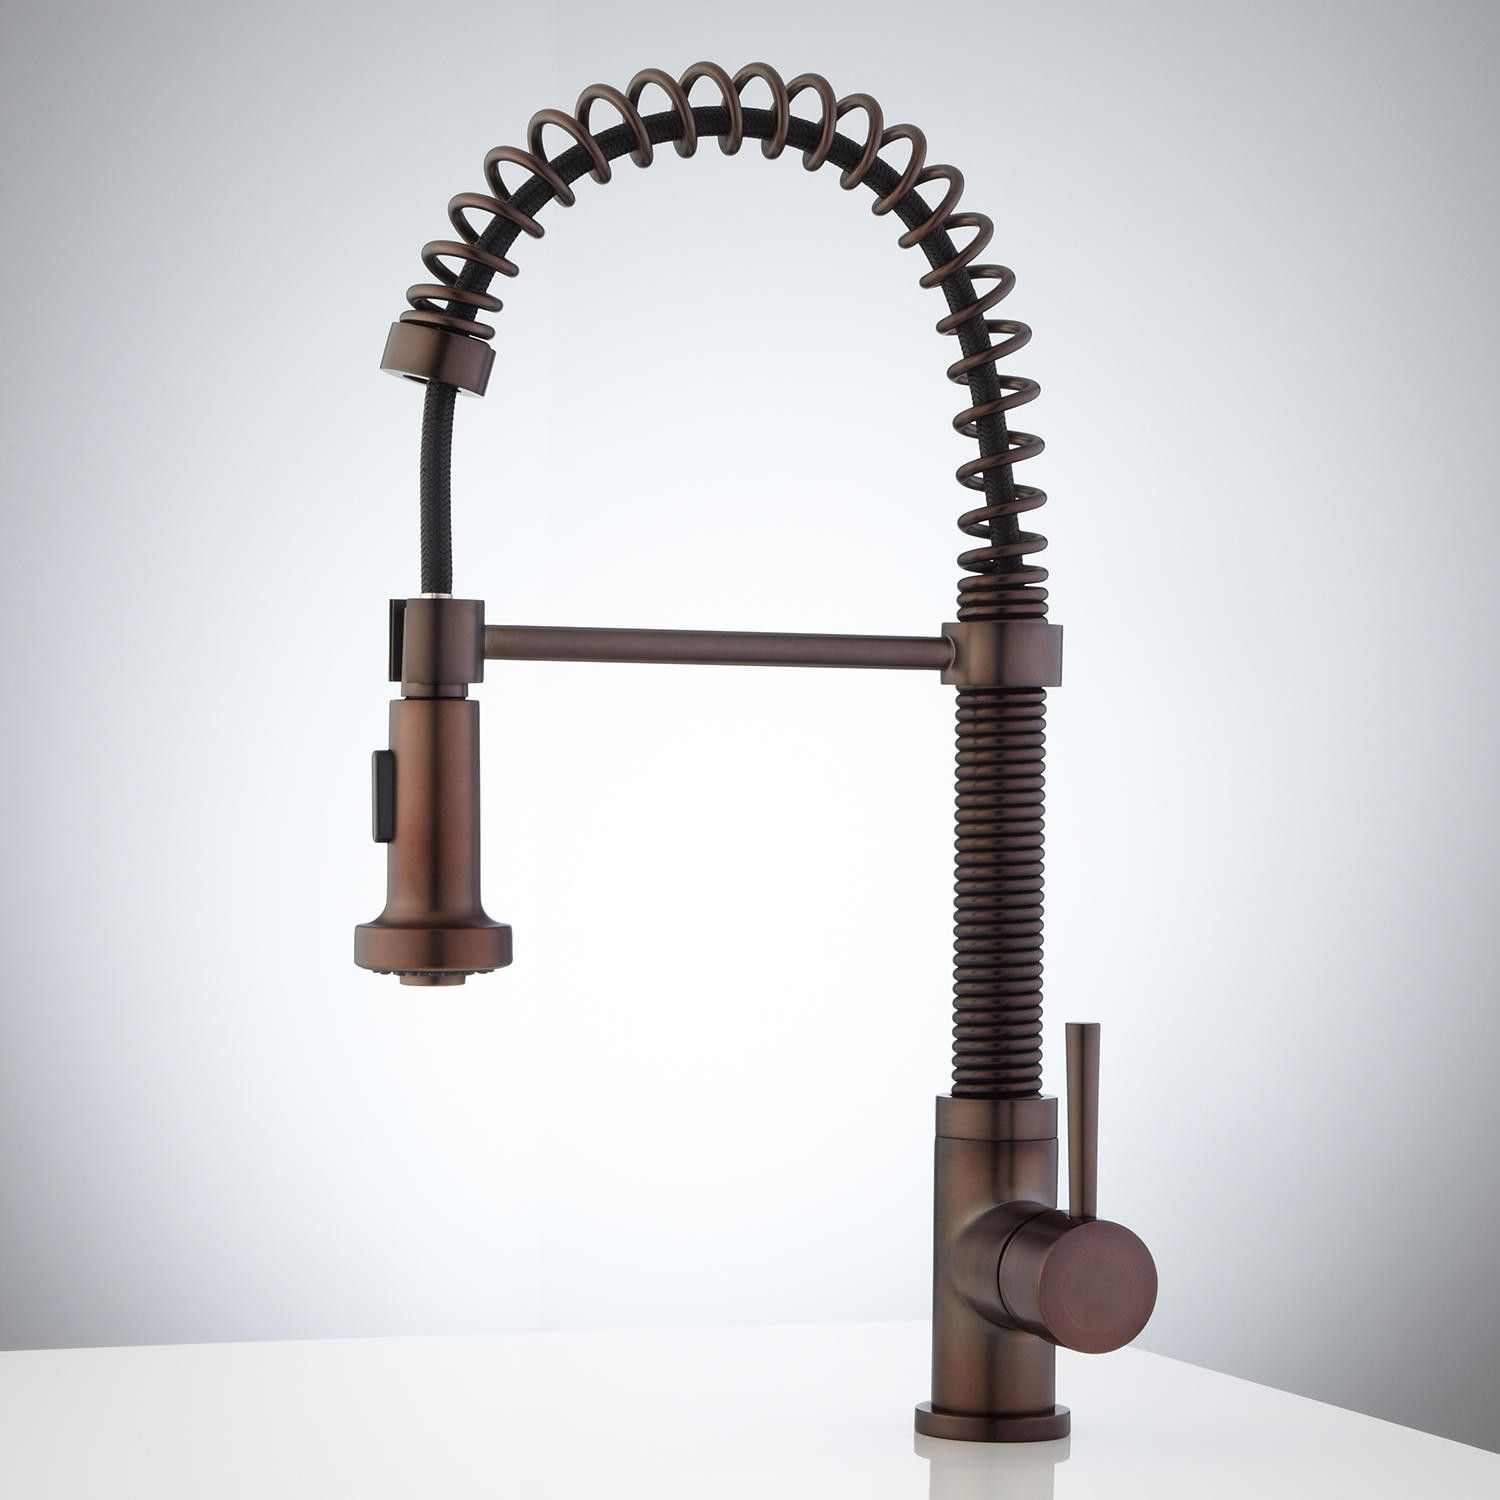 "Greiner Kitchen 18 3 4"" $210 Ariza Kitchen Faucet with Spring"